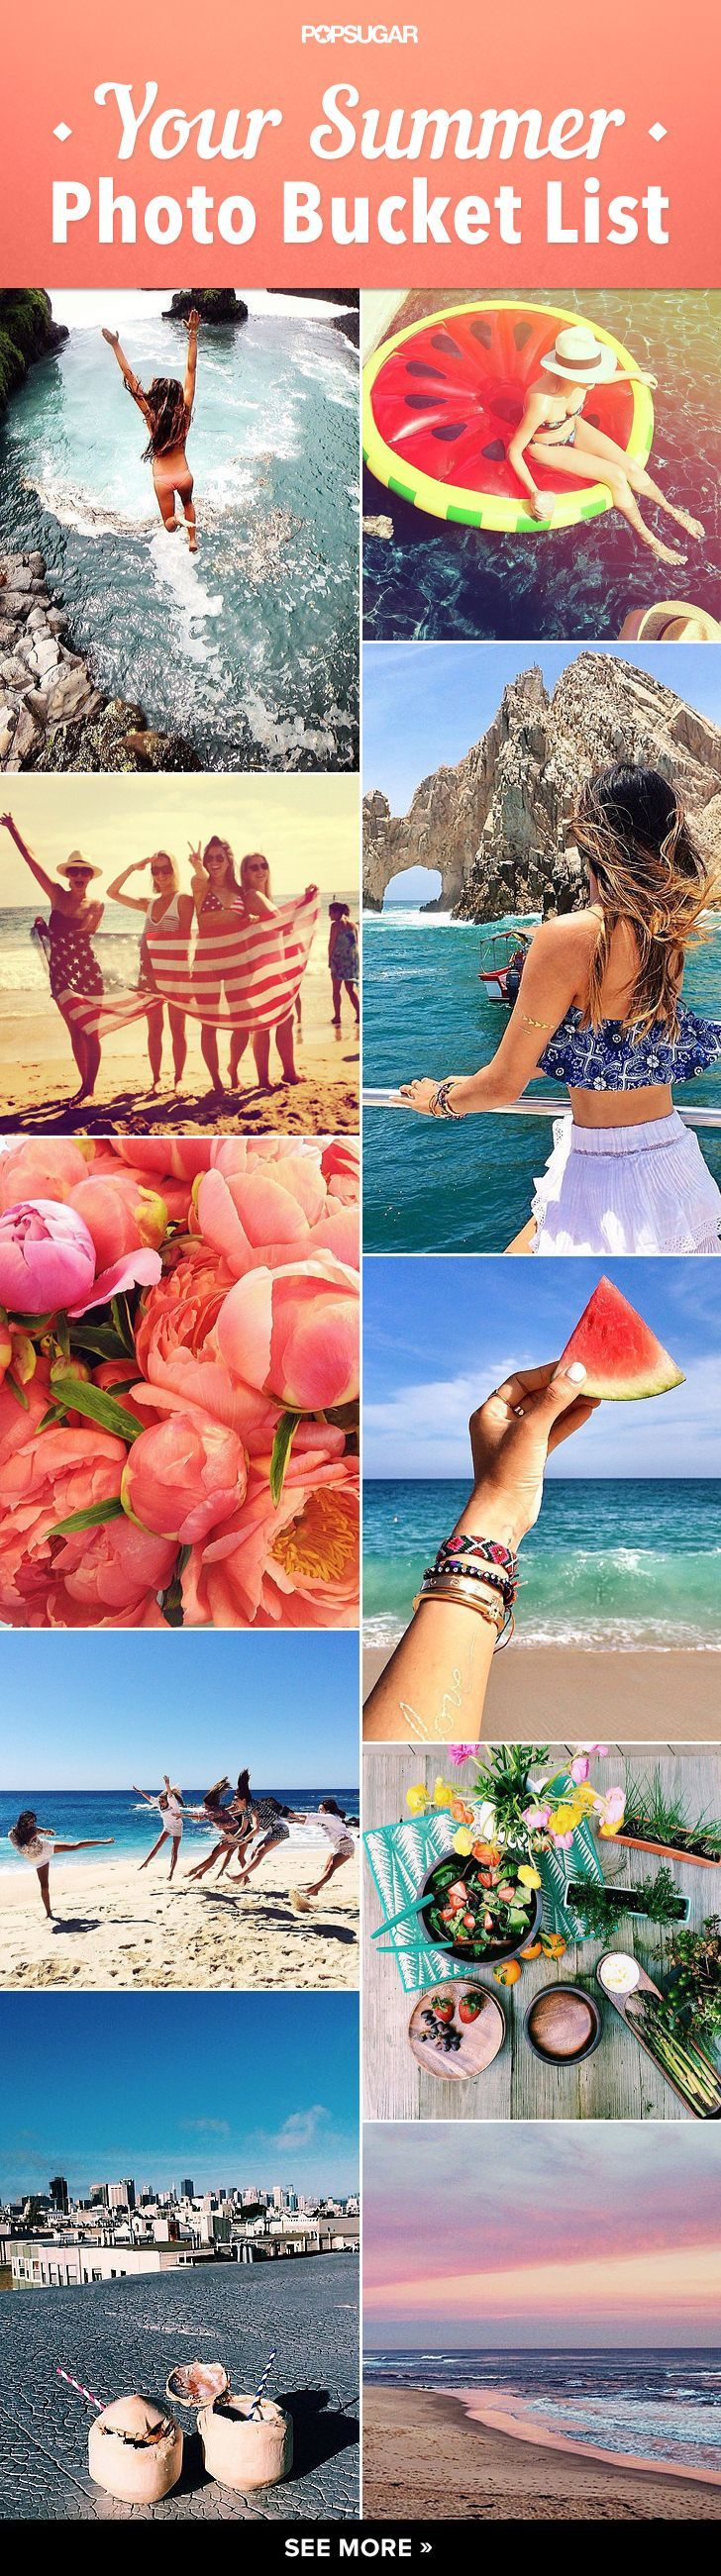 Get ready for Summer with this photo bucket list!